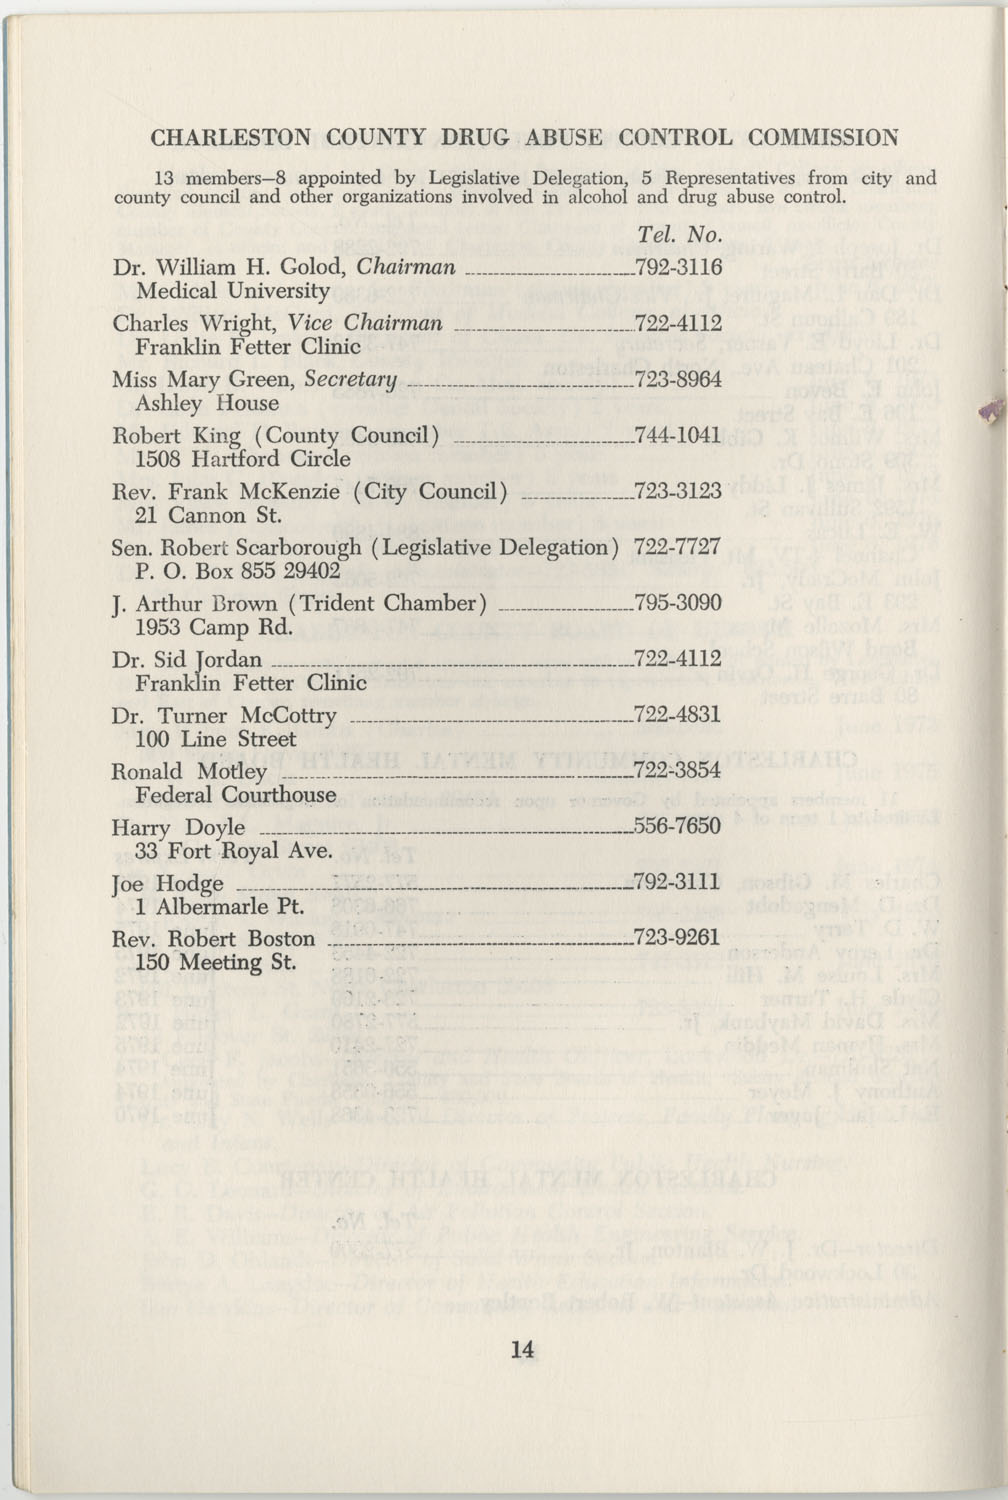 Directory of Public Officials, 1972-1973, Page 14